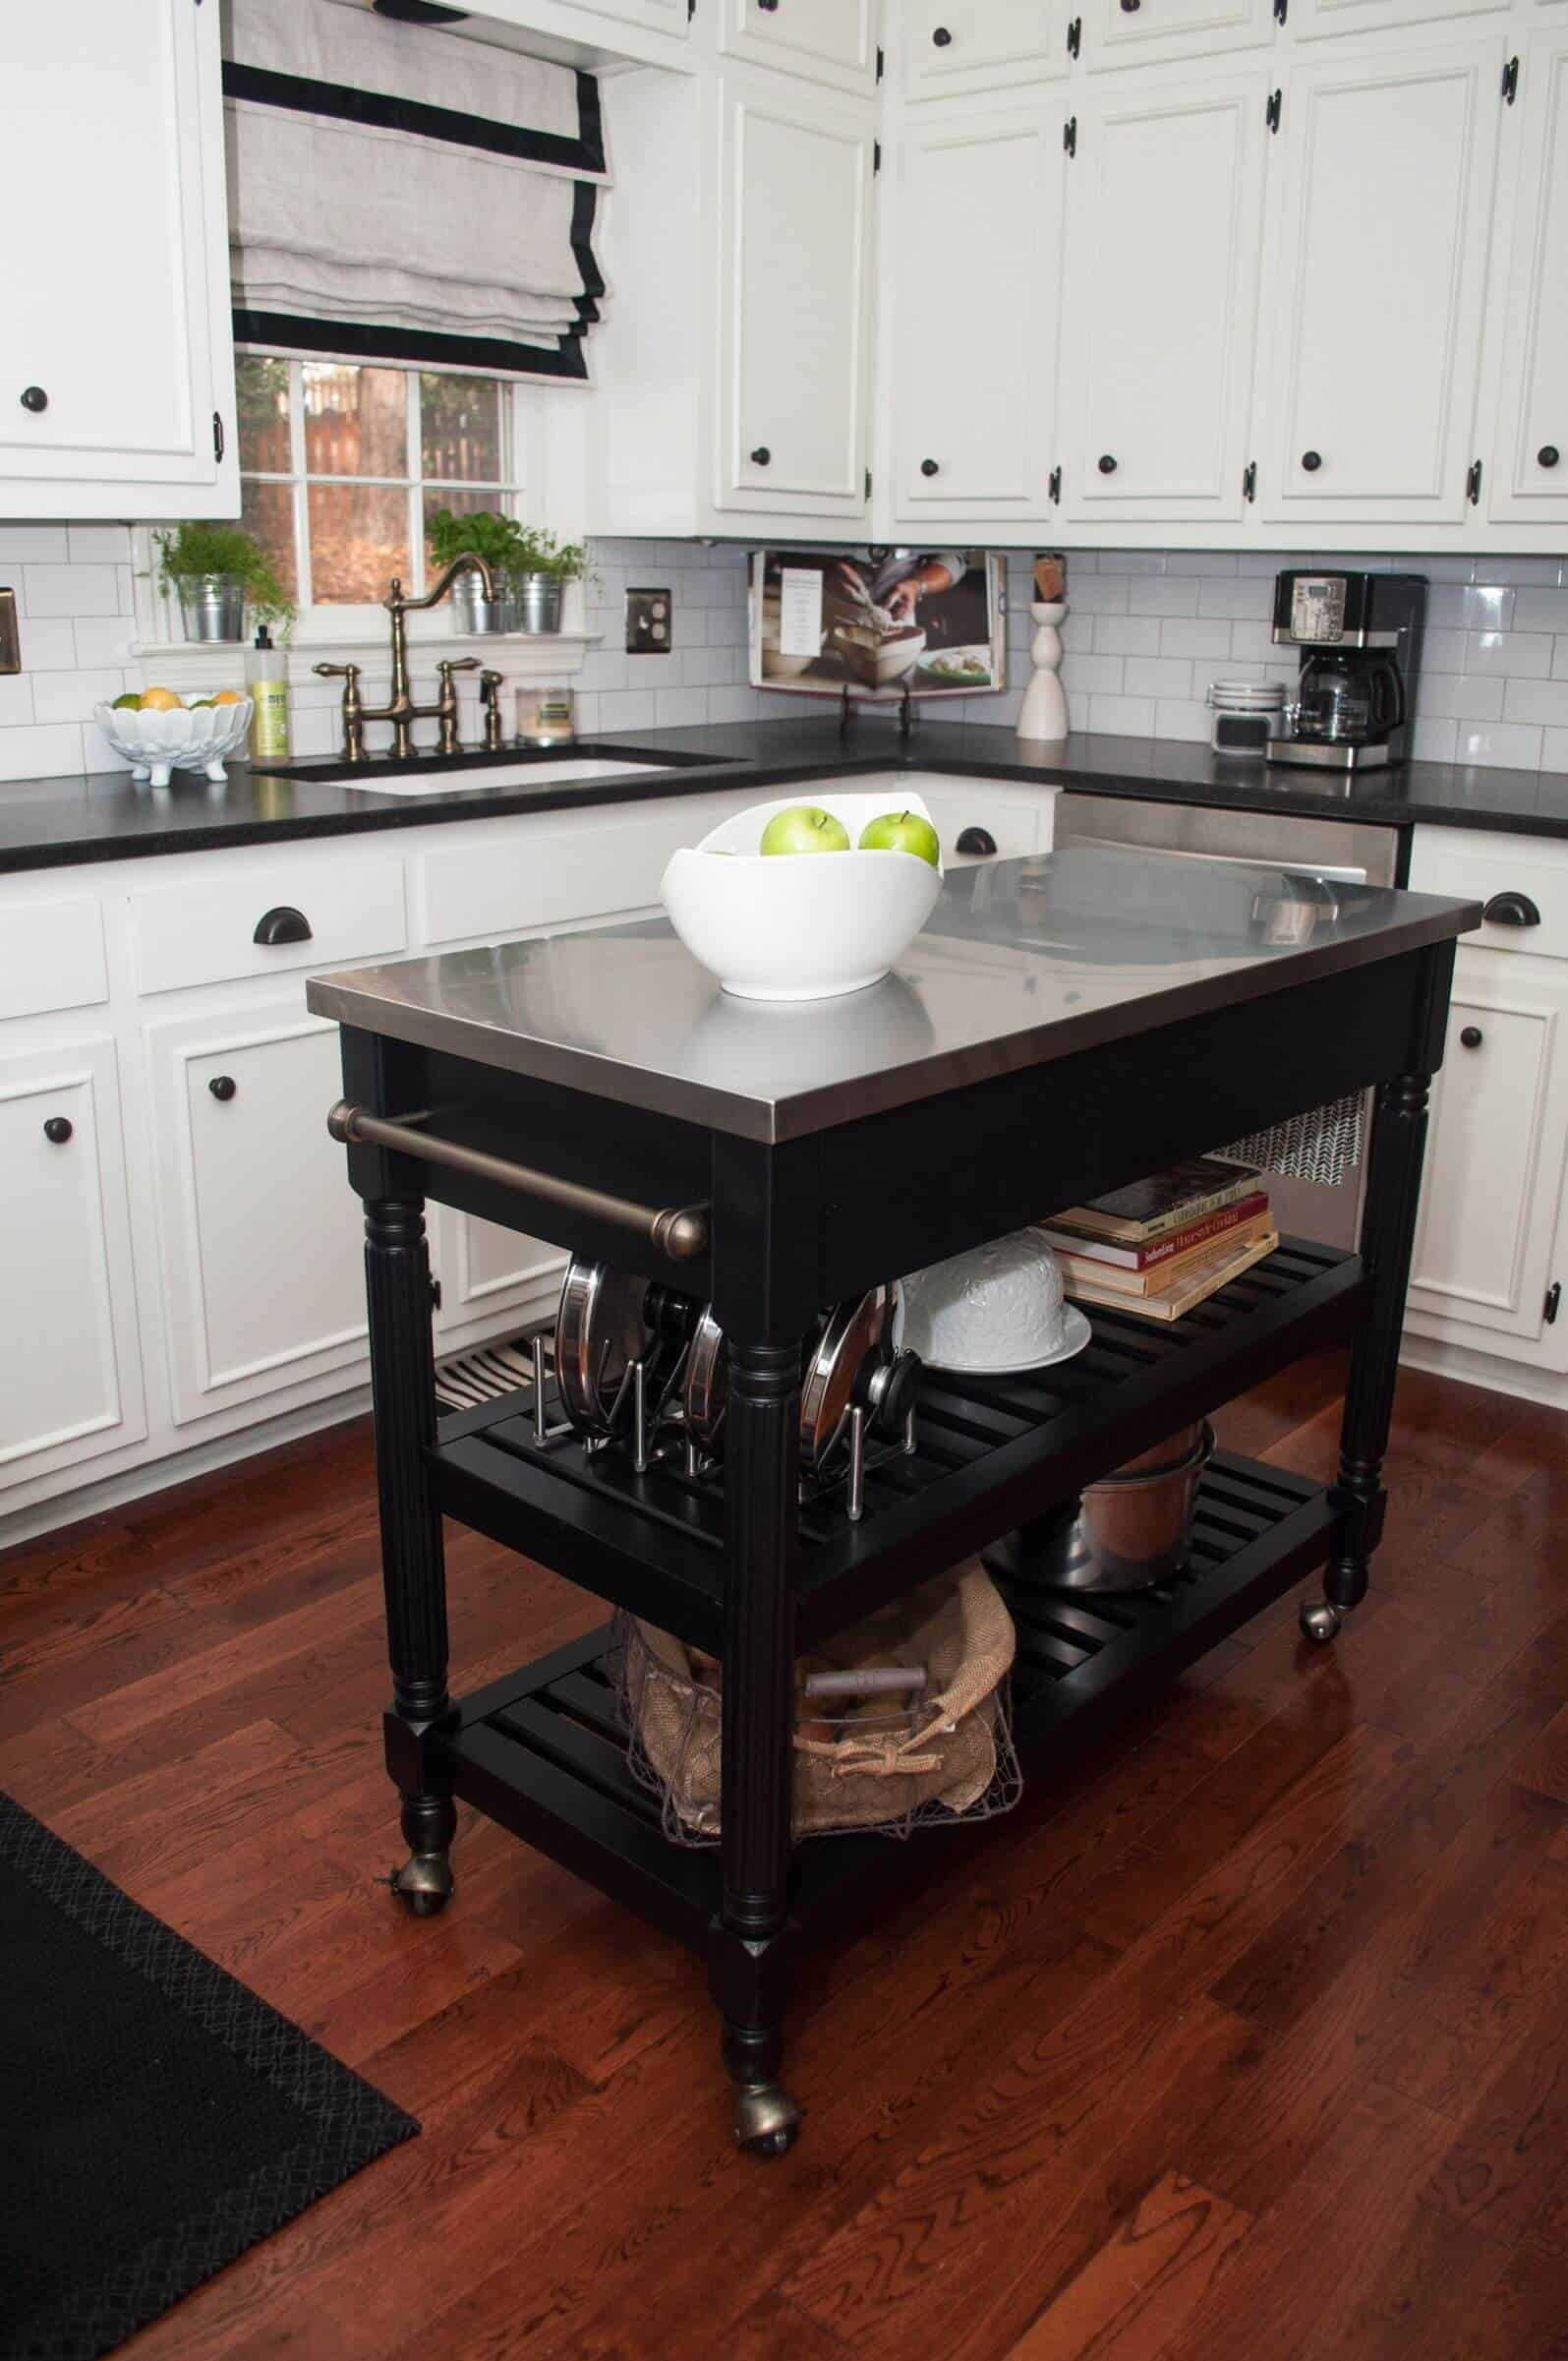 20 Clever Small Island Ideas For Your Kitchen Photos Kitchen Design Small Portable Kitchen Island Small Kitchen Decor